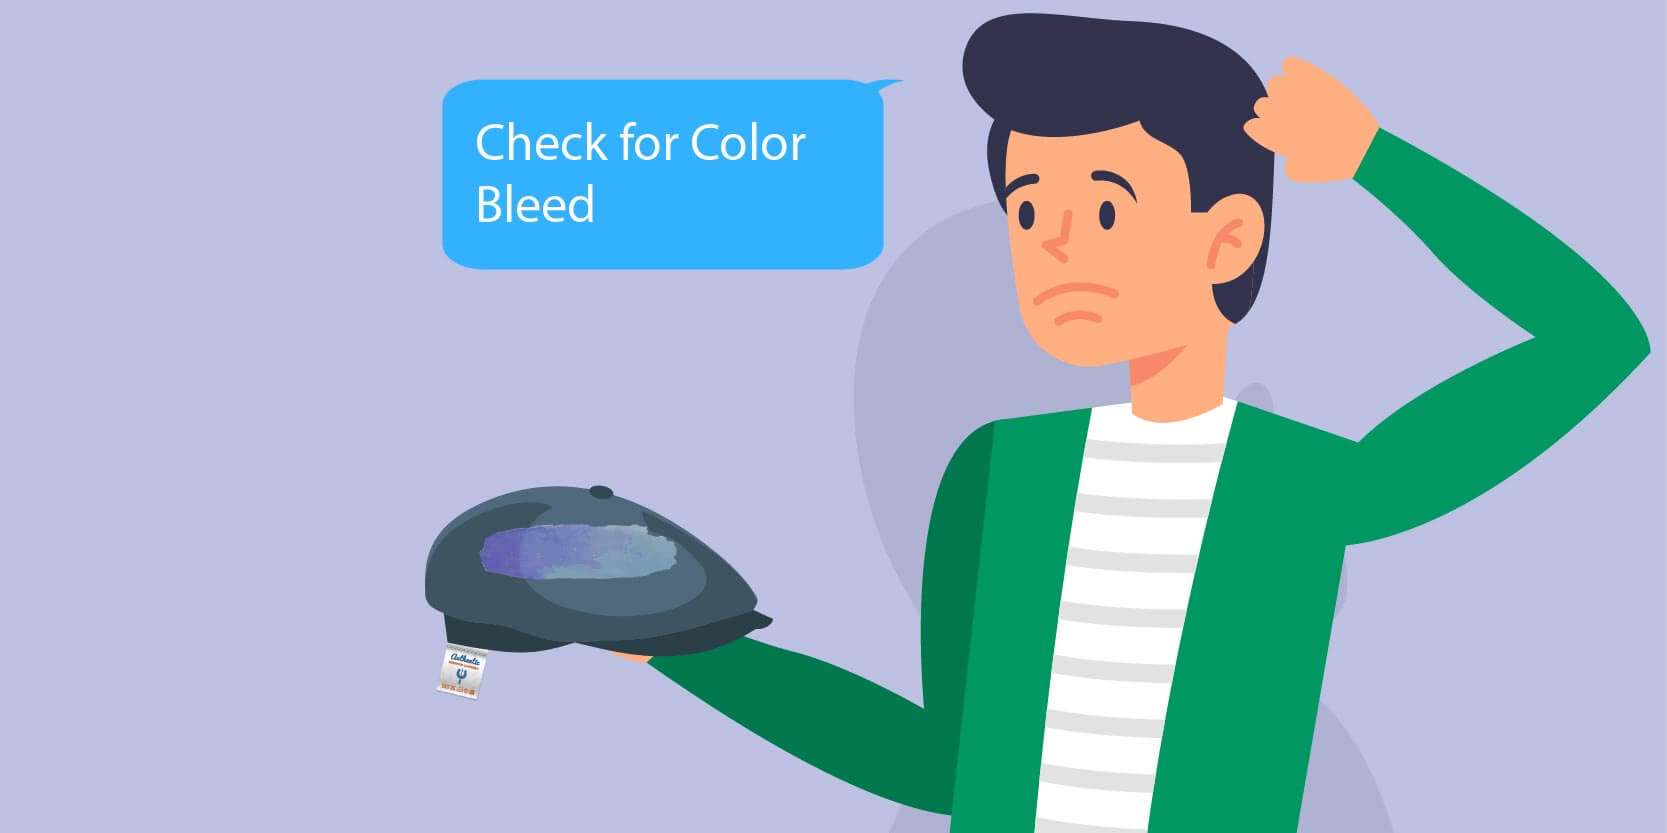 Check for Color Bleed